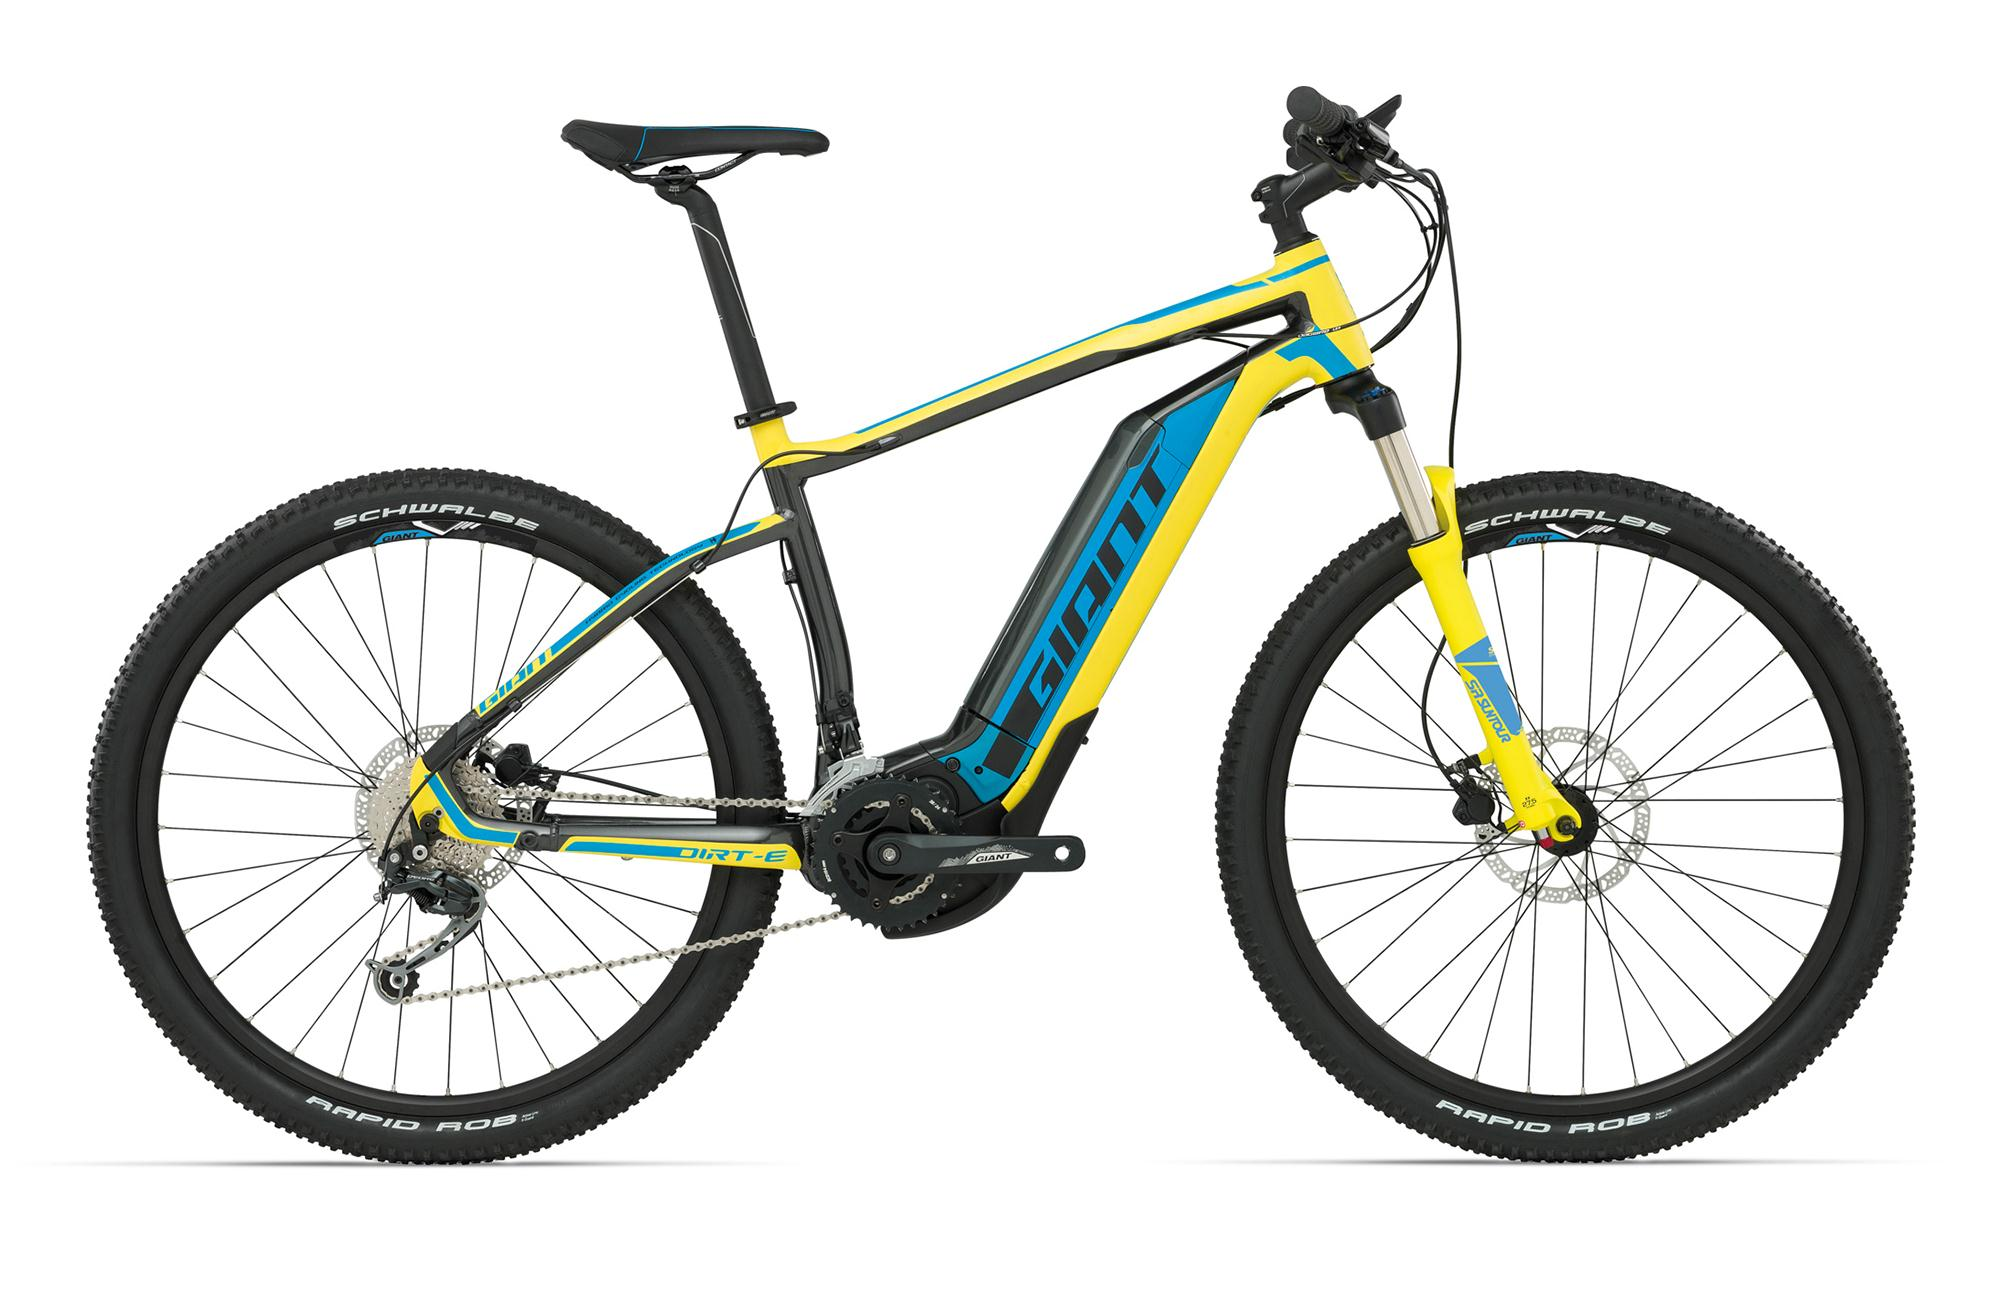 2016 GIANT DIRT-E PLUS 2 ELECTRIC MOUNTAIN BIKE